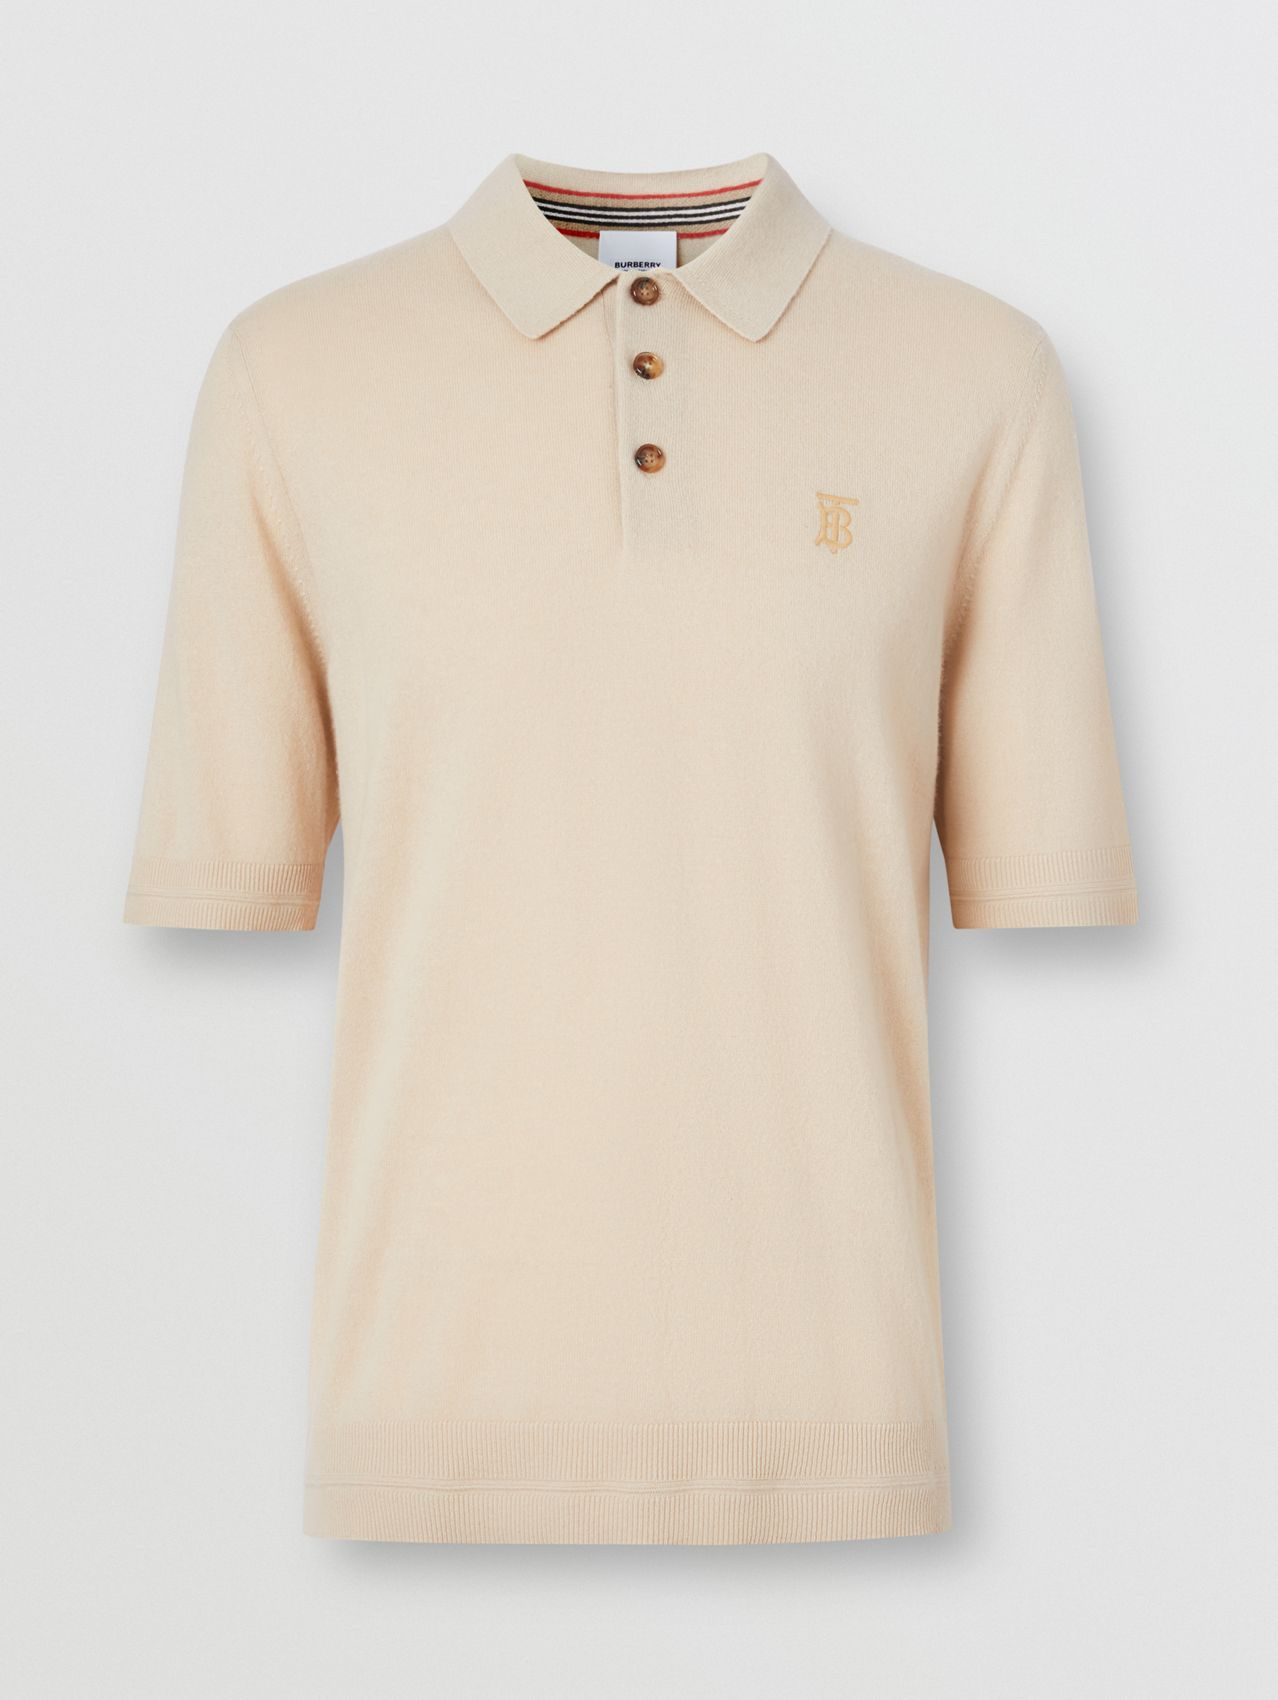 Monogram Motif Cashmere Polo Shirt in Soft Fawn